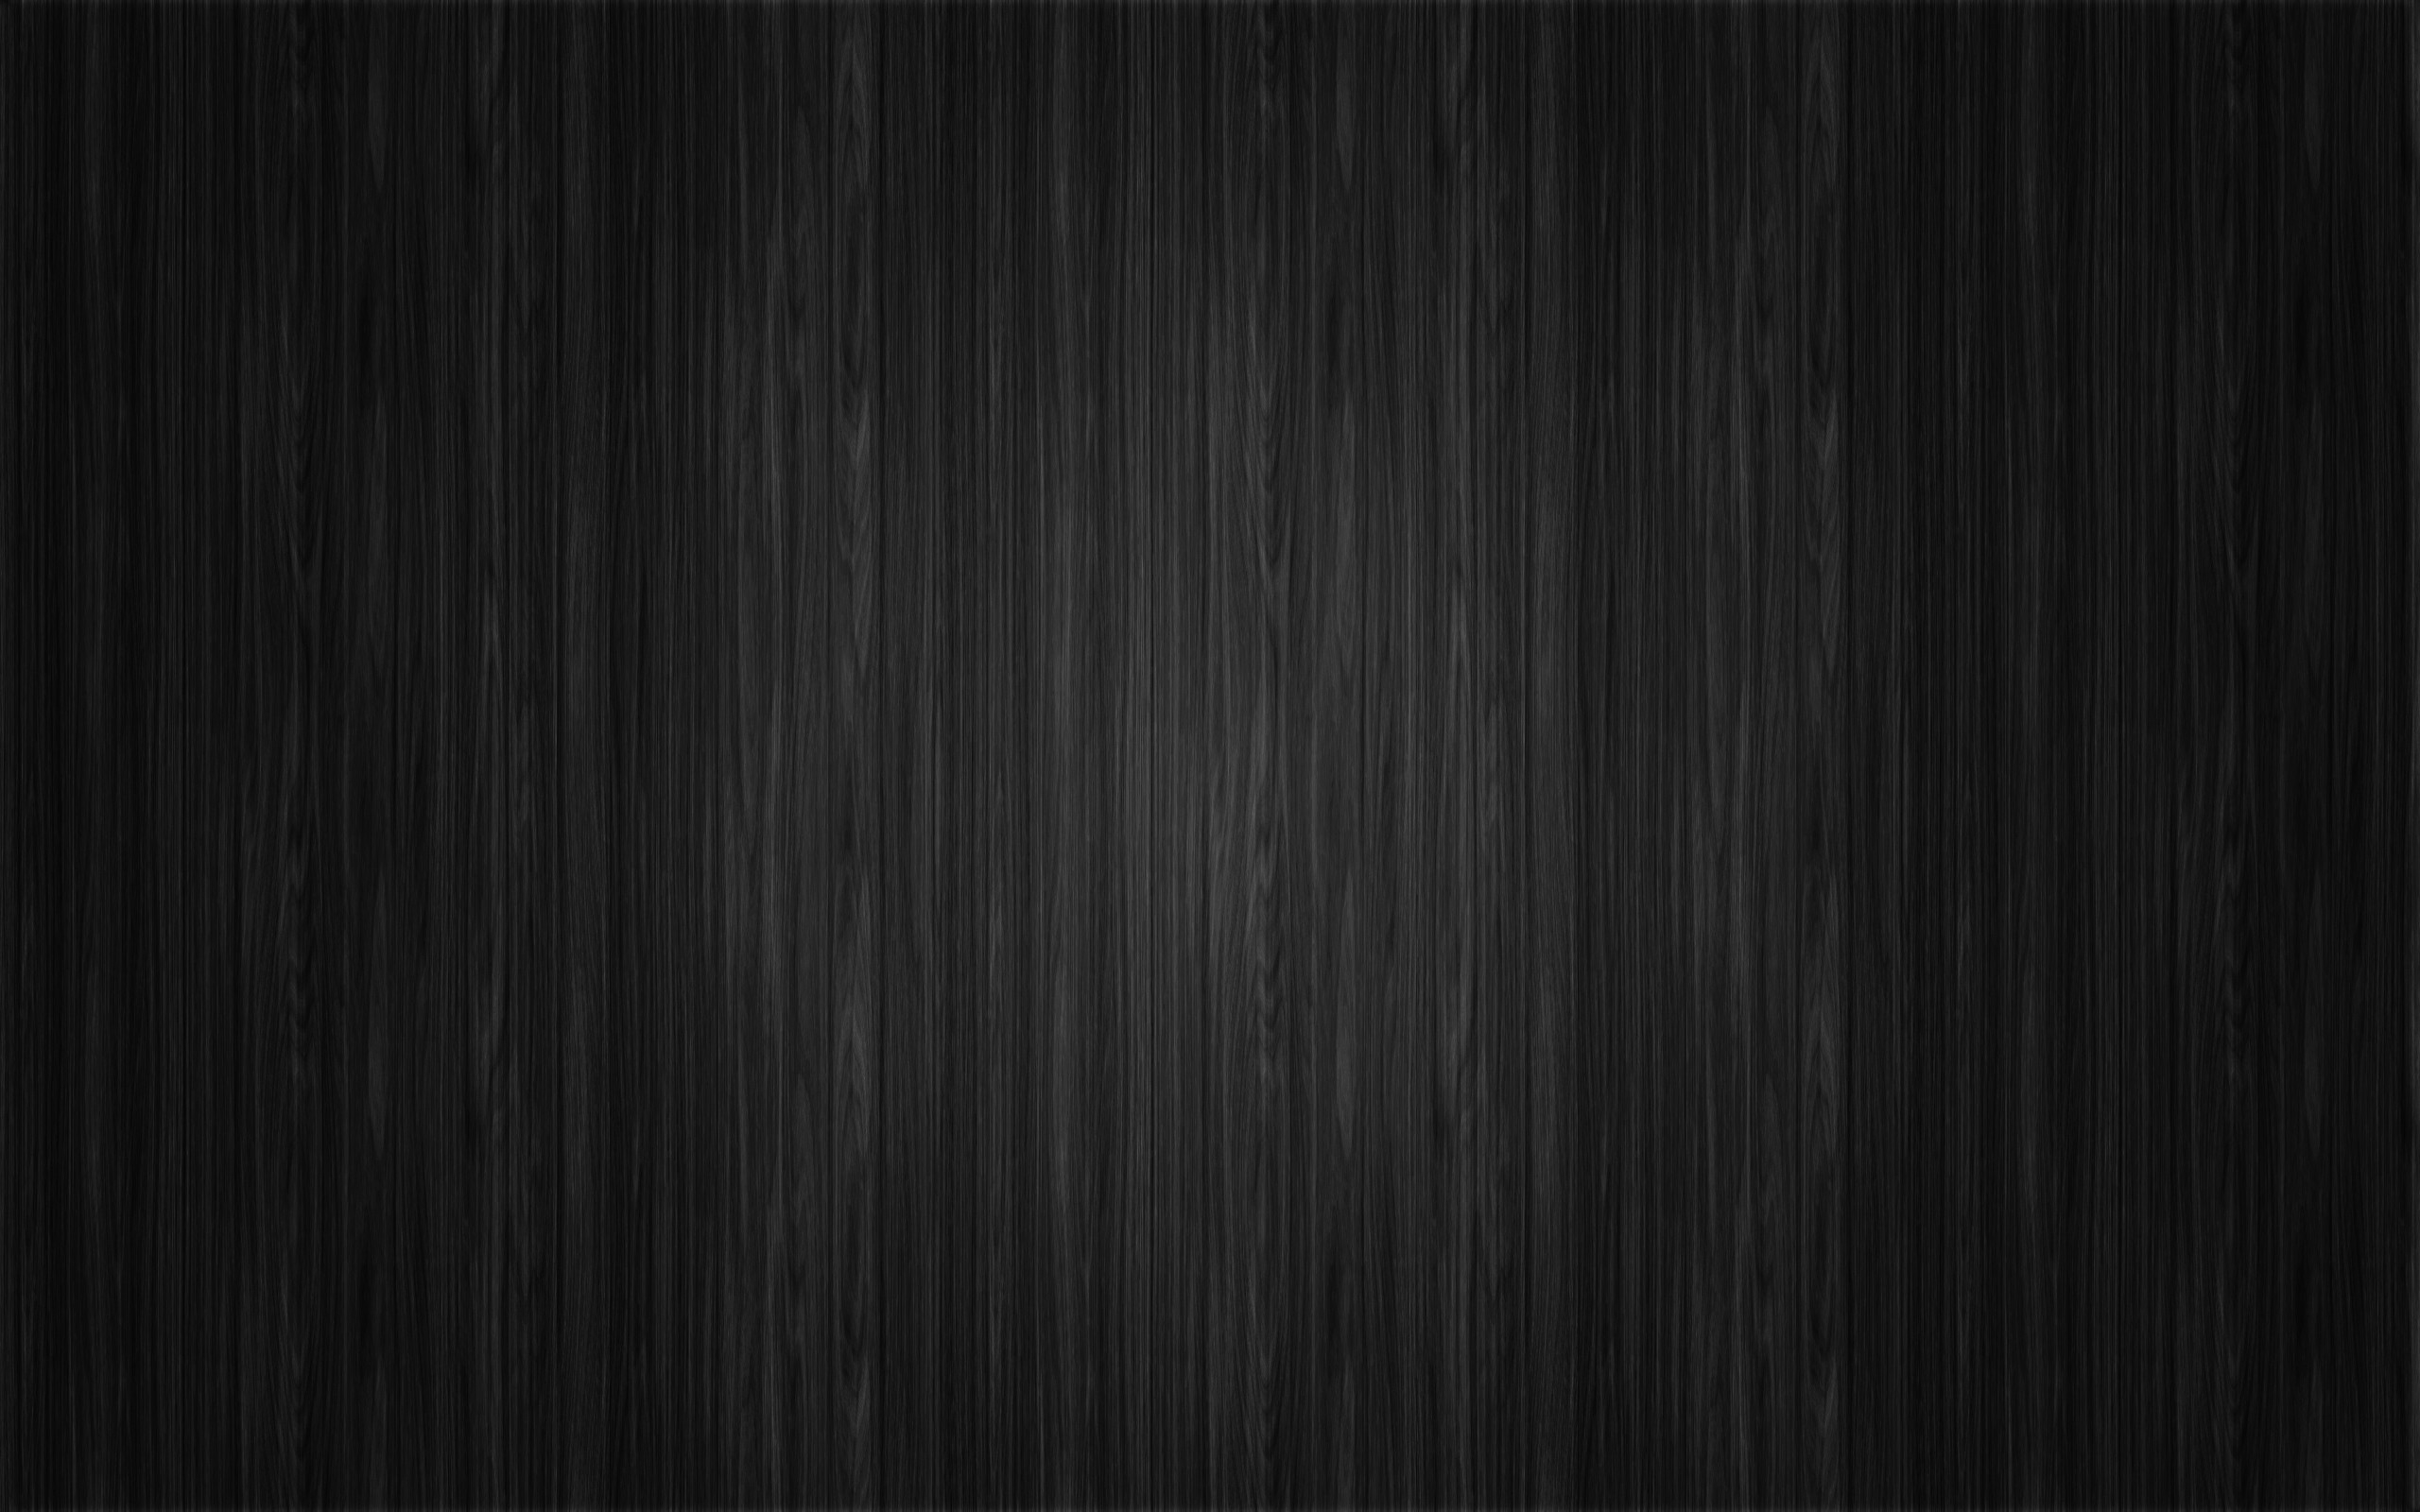 Black wallpaper clipart graphic royalty free 79+ Dark Wood Wallpapers on WallpaperPlay graphic royalty free